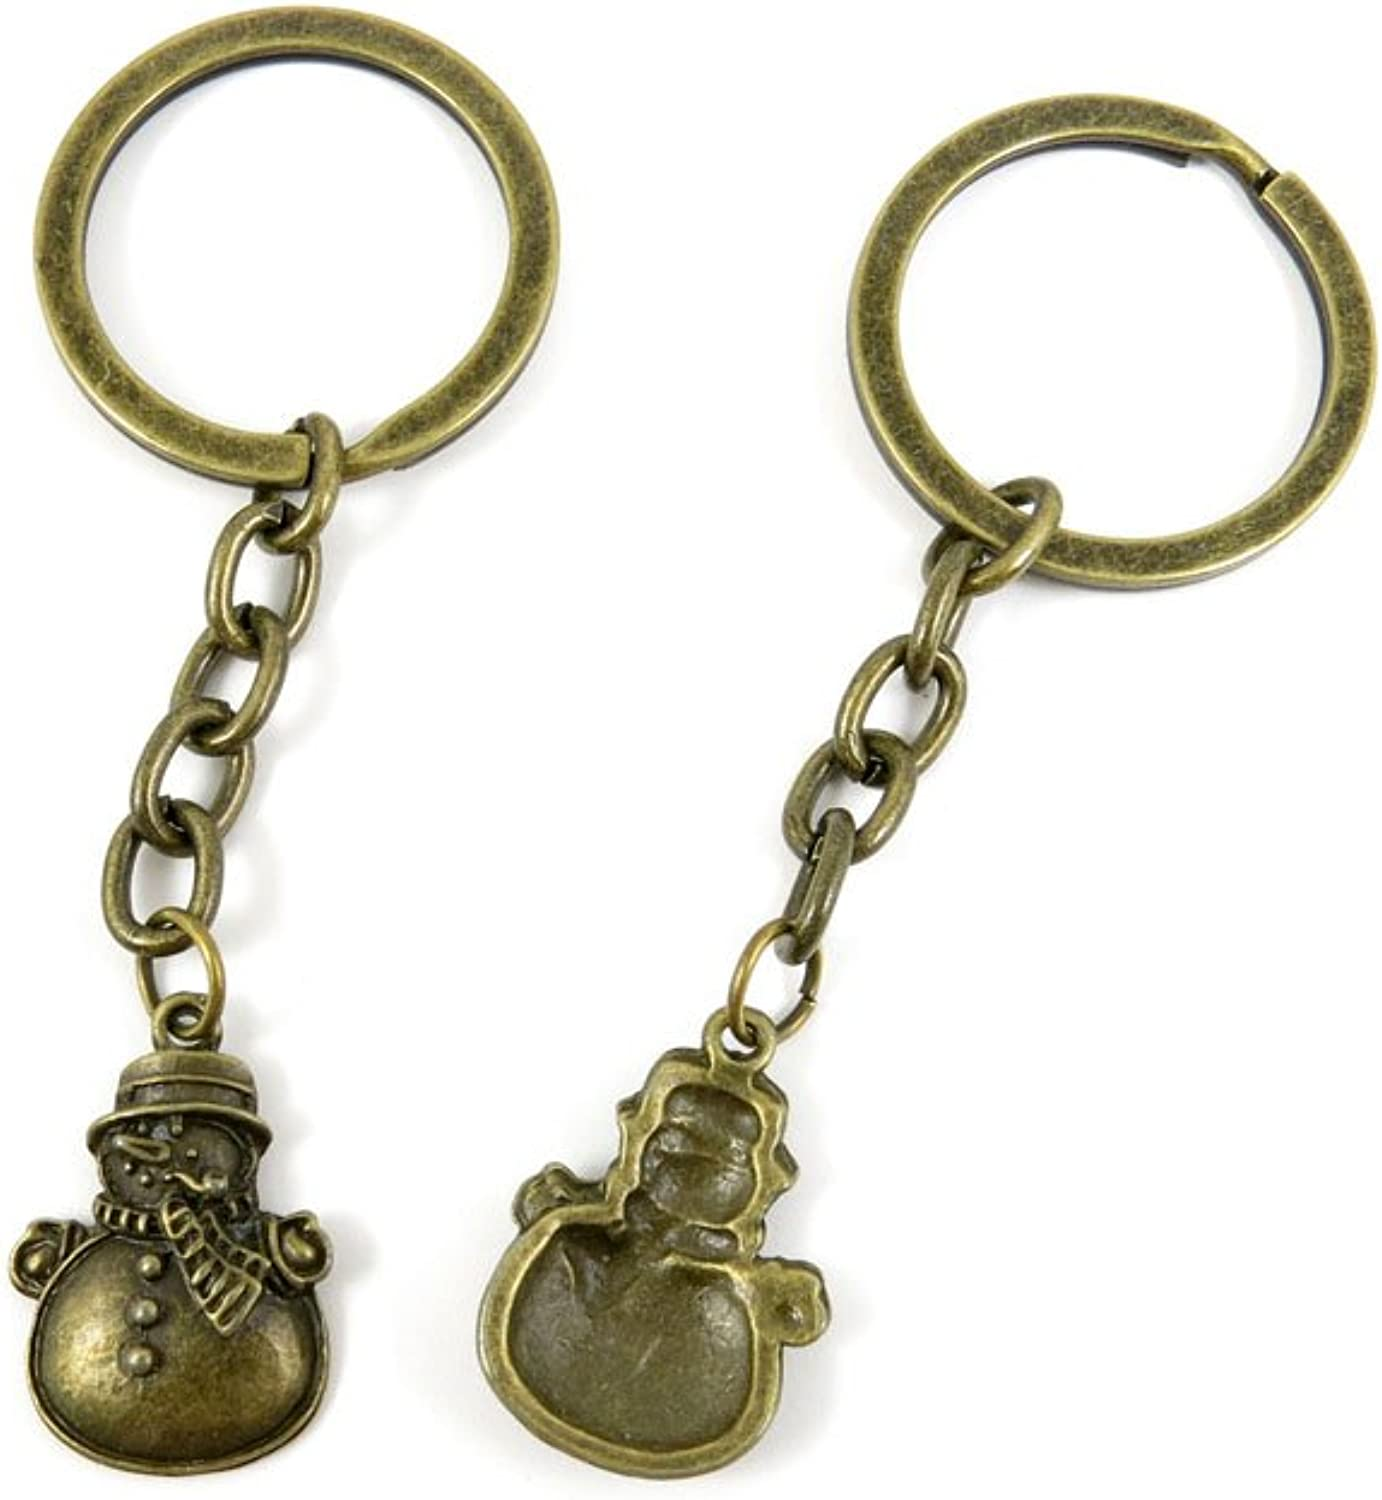 180 Pieces Fashion Jewelry Keyring Keychain Door Car Key Tag Ring Chain Supplier Supply Wholesale Bulk Lots Z6TP7 Xmas Snowman